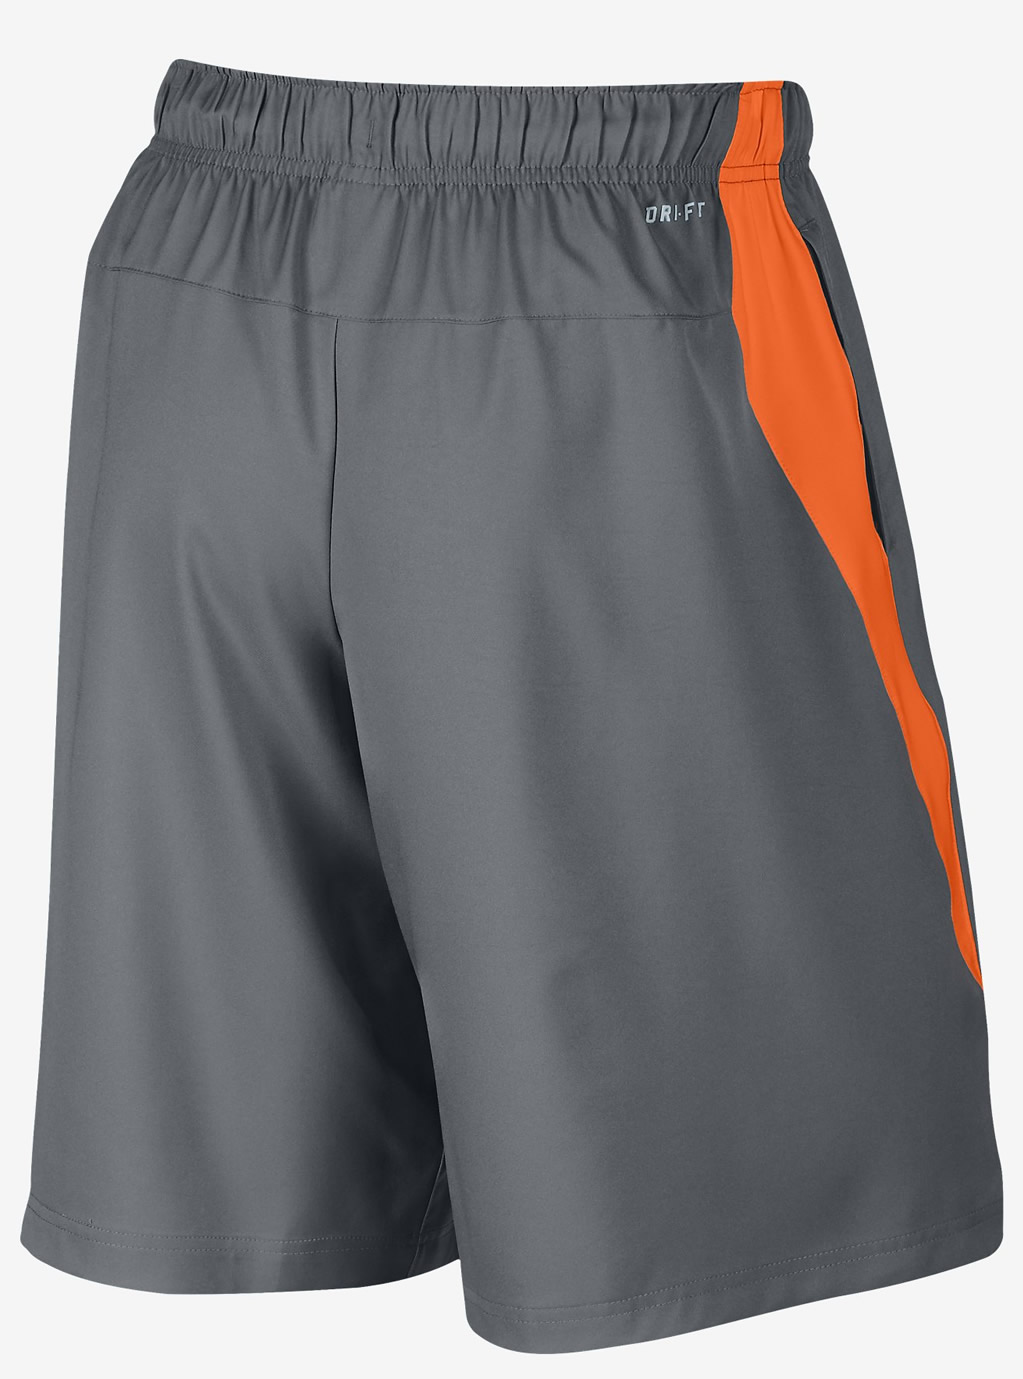 Nike Lacrosse Woven Men's Training Shorts, Back